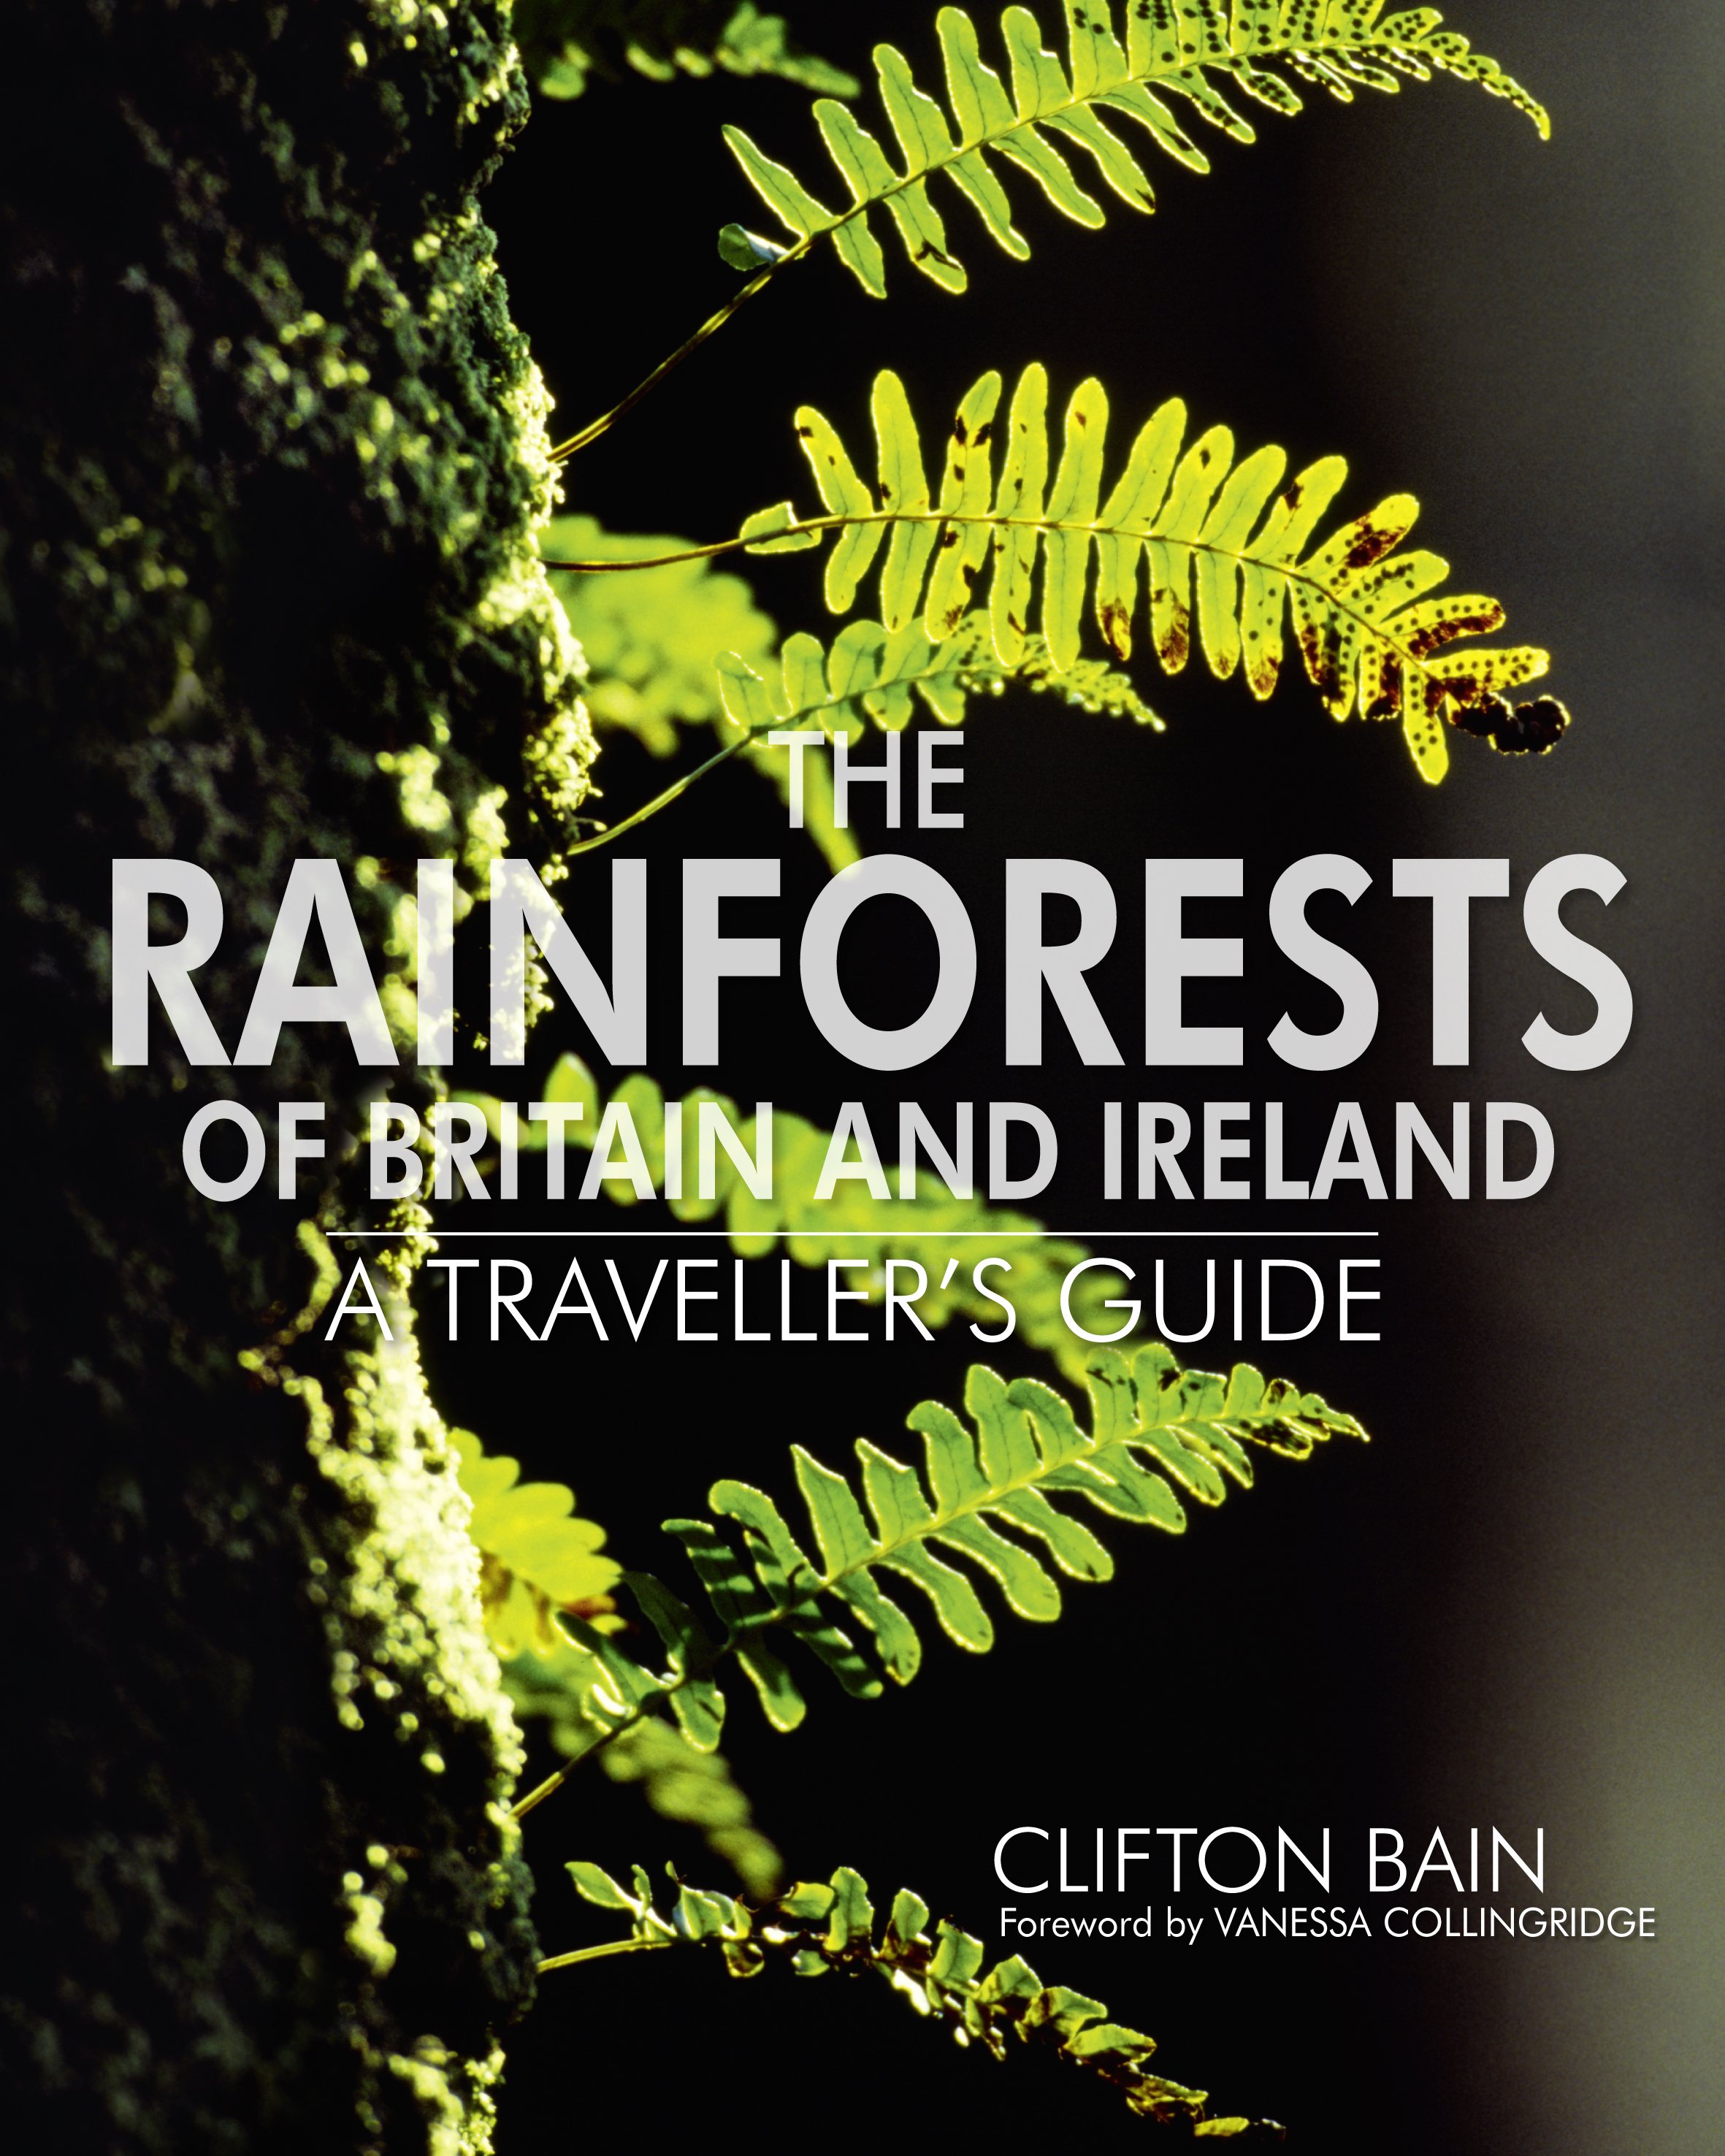 The Rainforests of Britain and Ireland